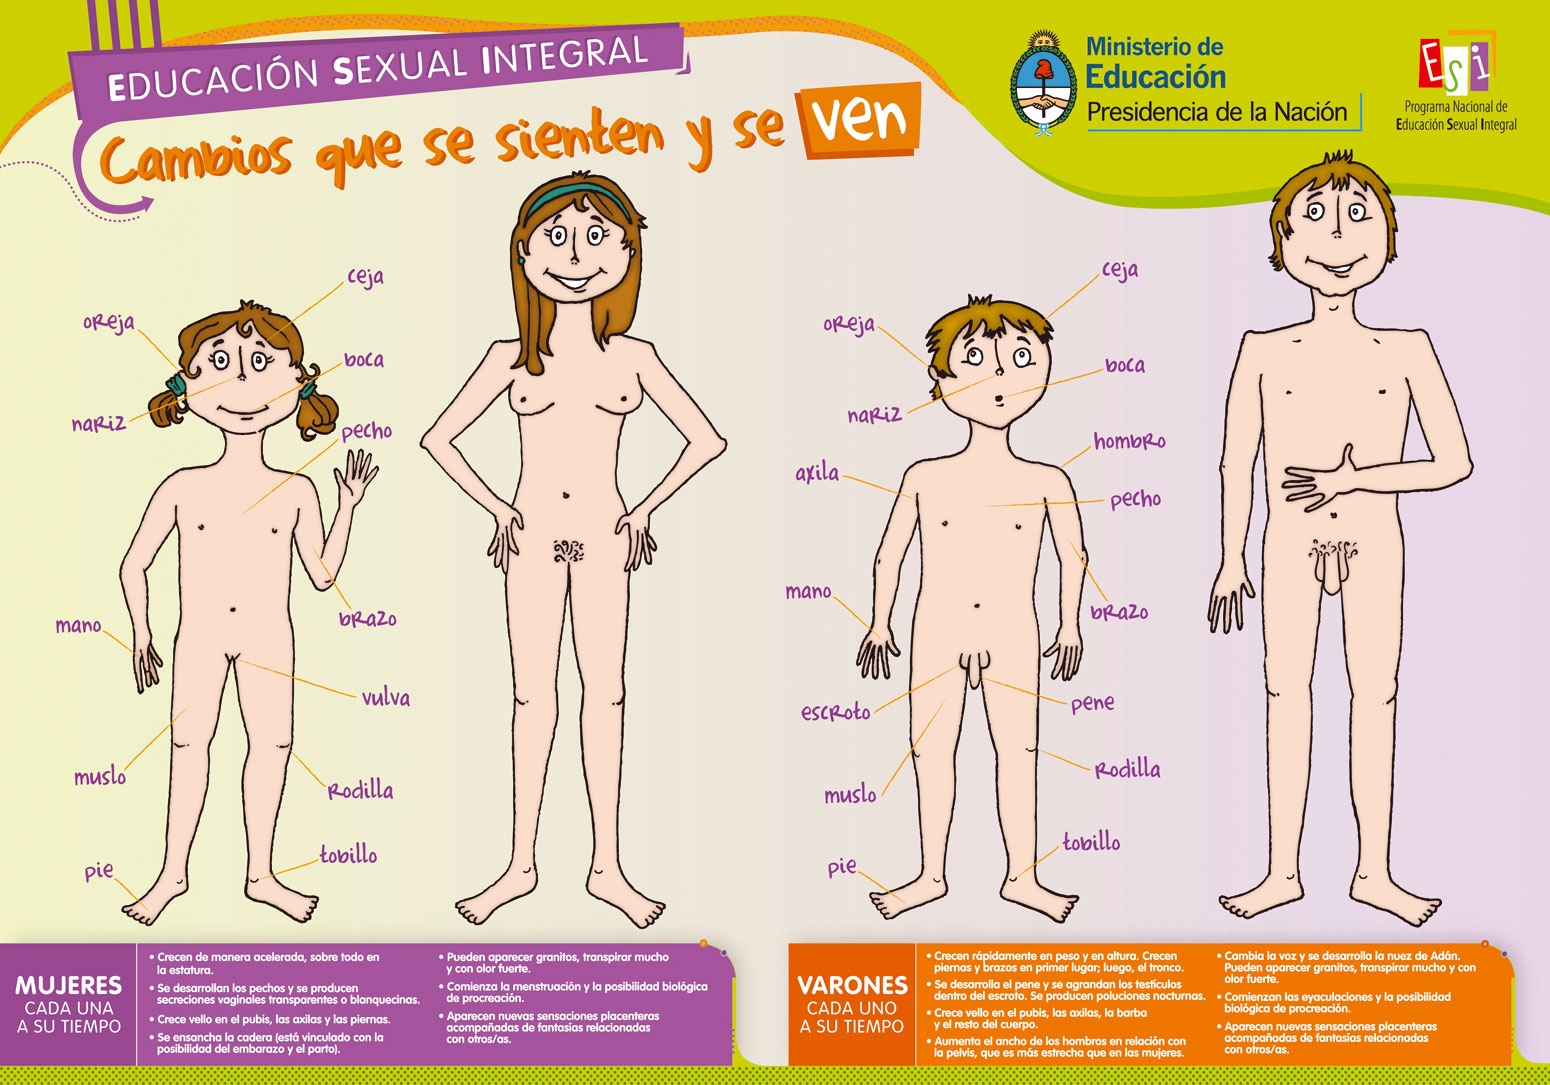 vida familiar y educacion sexual: